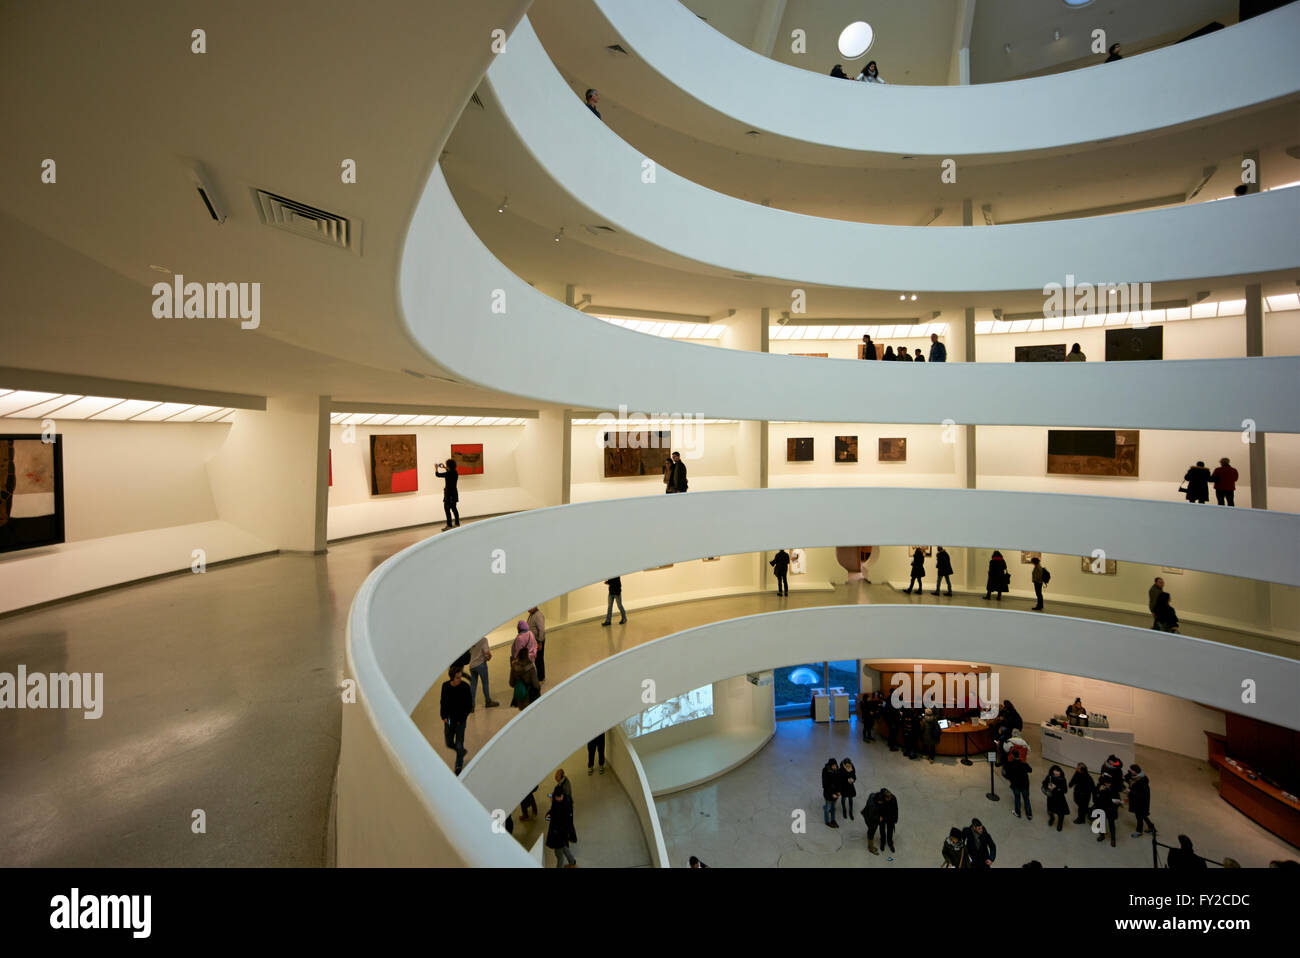 The interior of the Solomon R. Guggenheim Museum, Manhattan New York - Stock Image